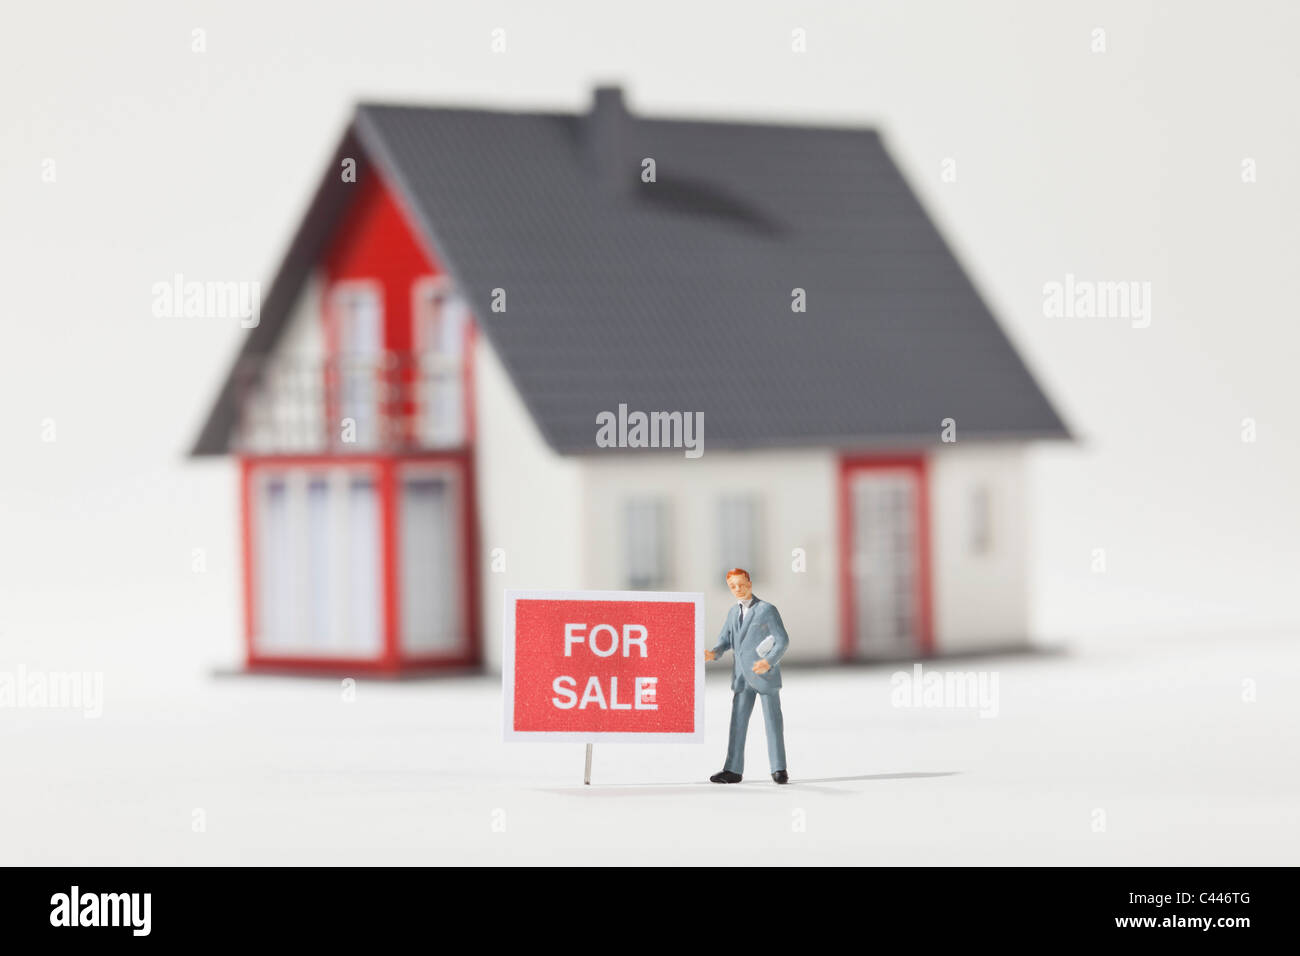 A miniature real estate agent figurine standing next to a FOR SALE sign - Stock Image